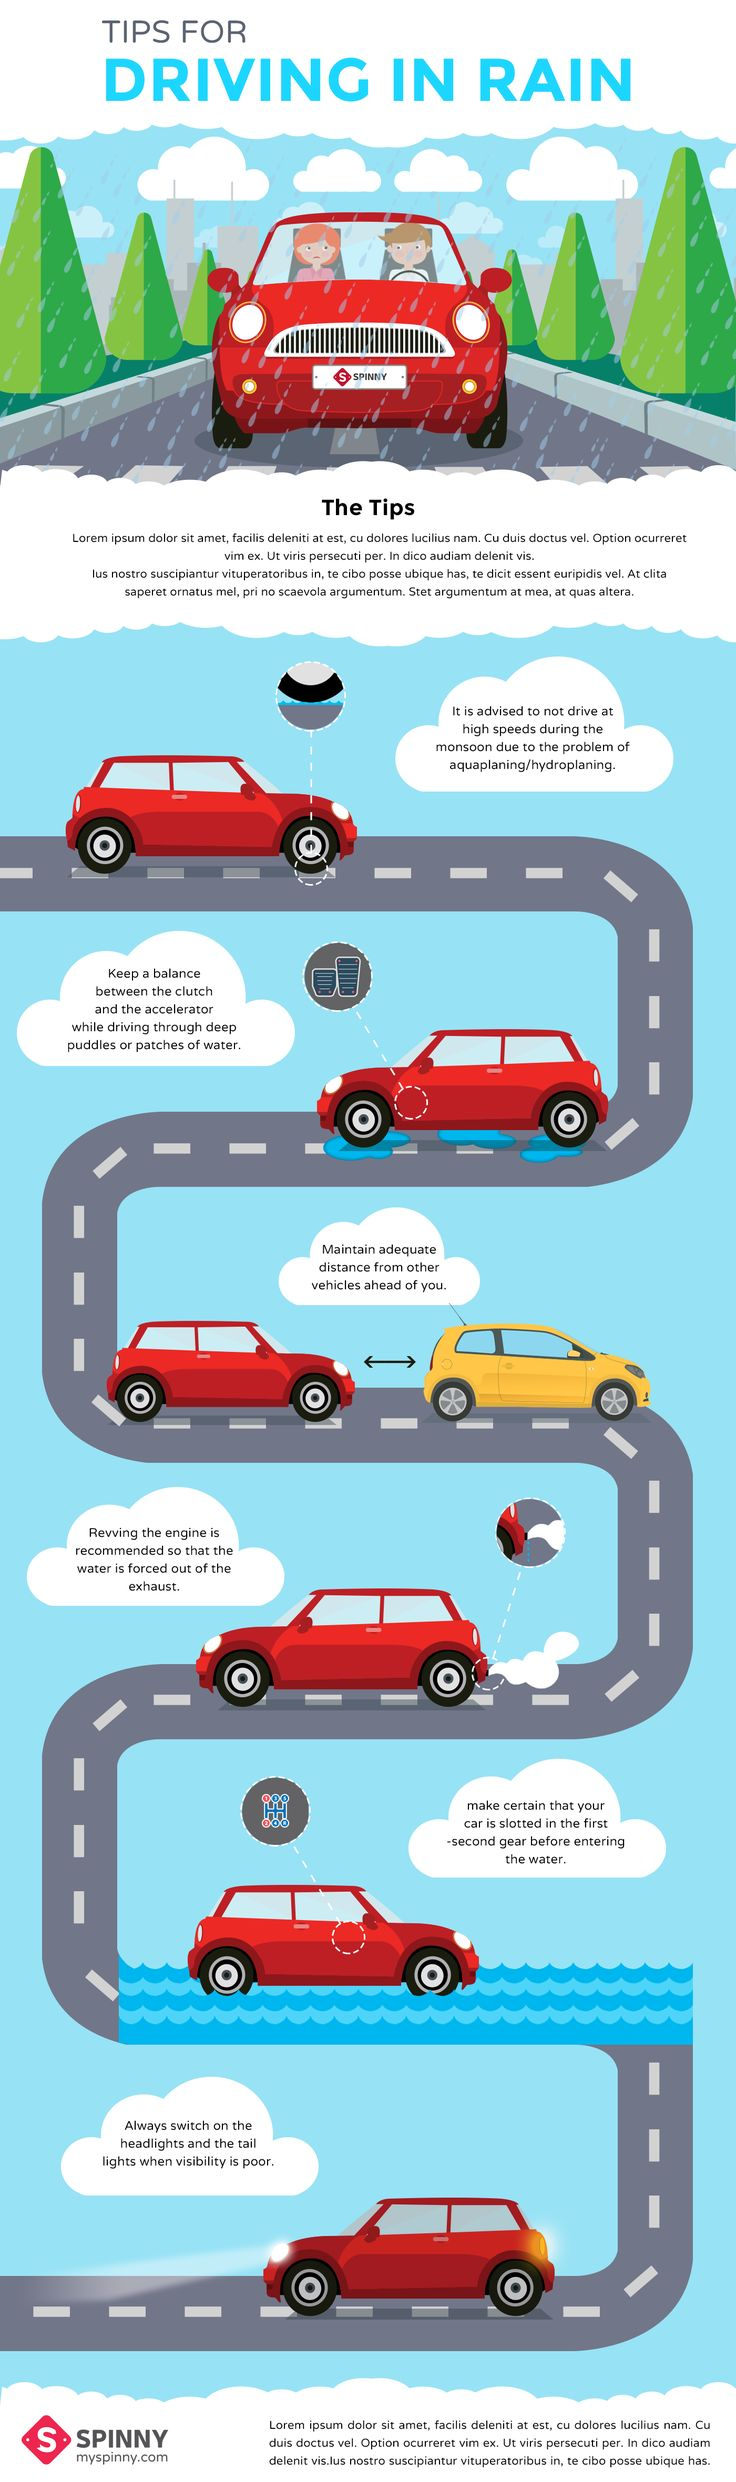 Monsoon Car Maintenance Guide Infographic by Spinny (myspinny.com).  The Most trusted platform to buy & sell pre-owned cars in India.